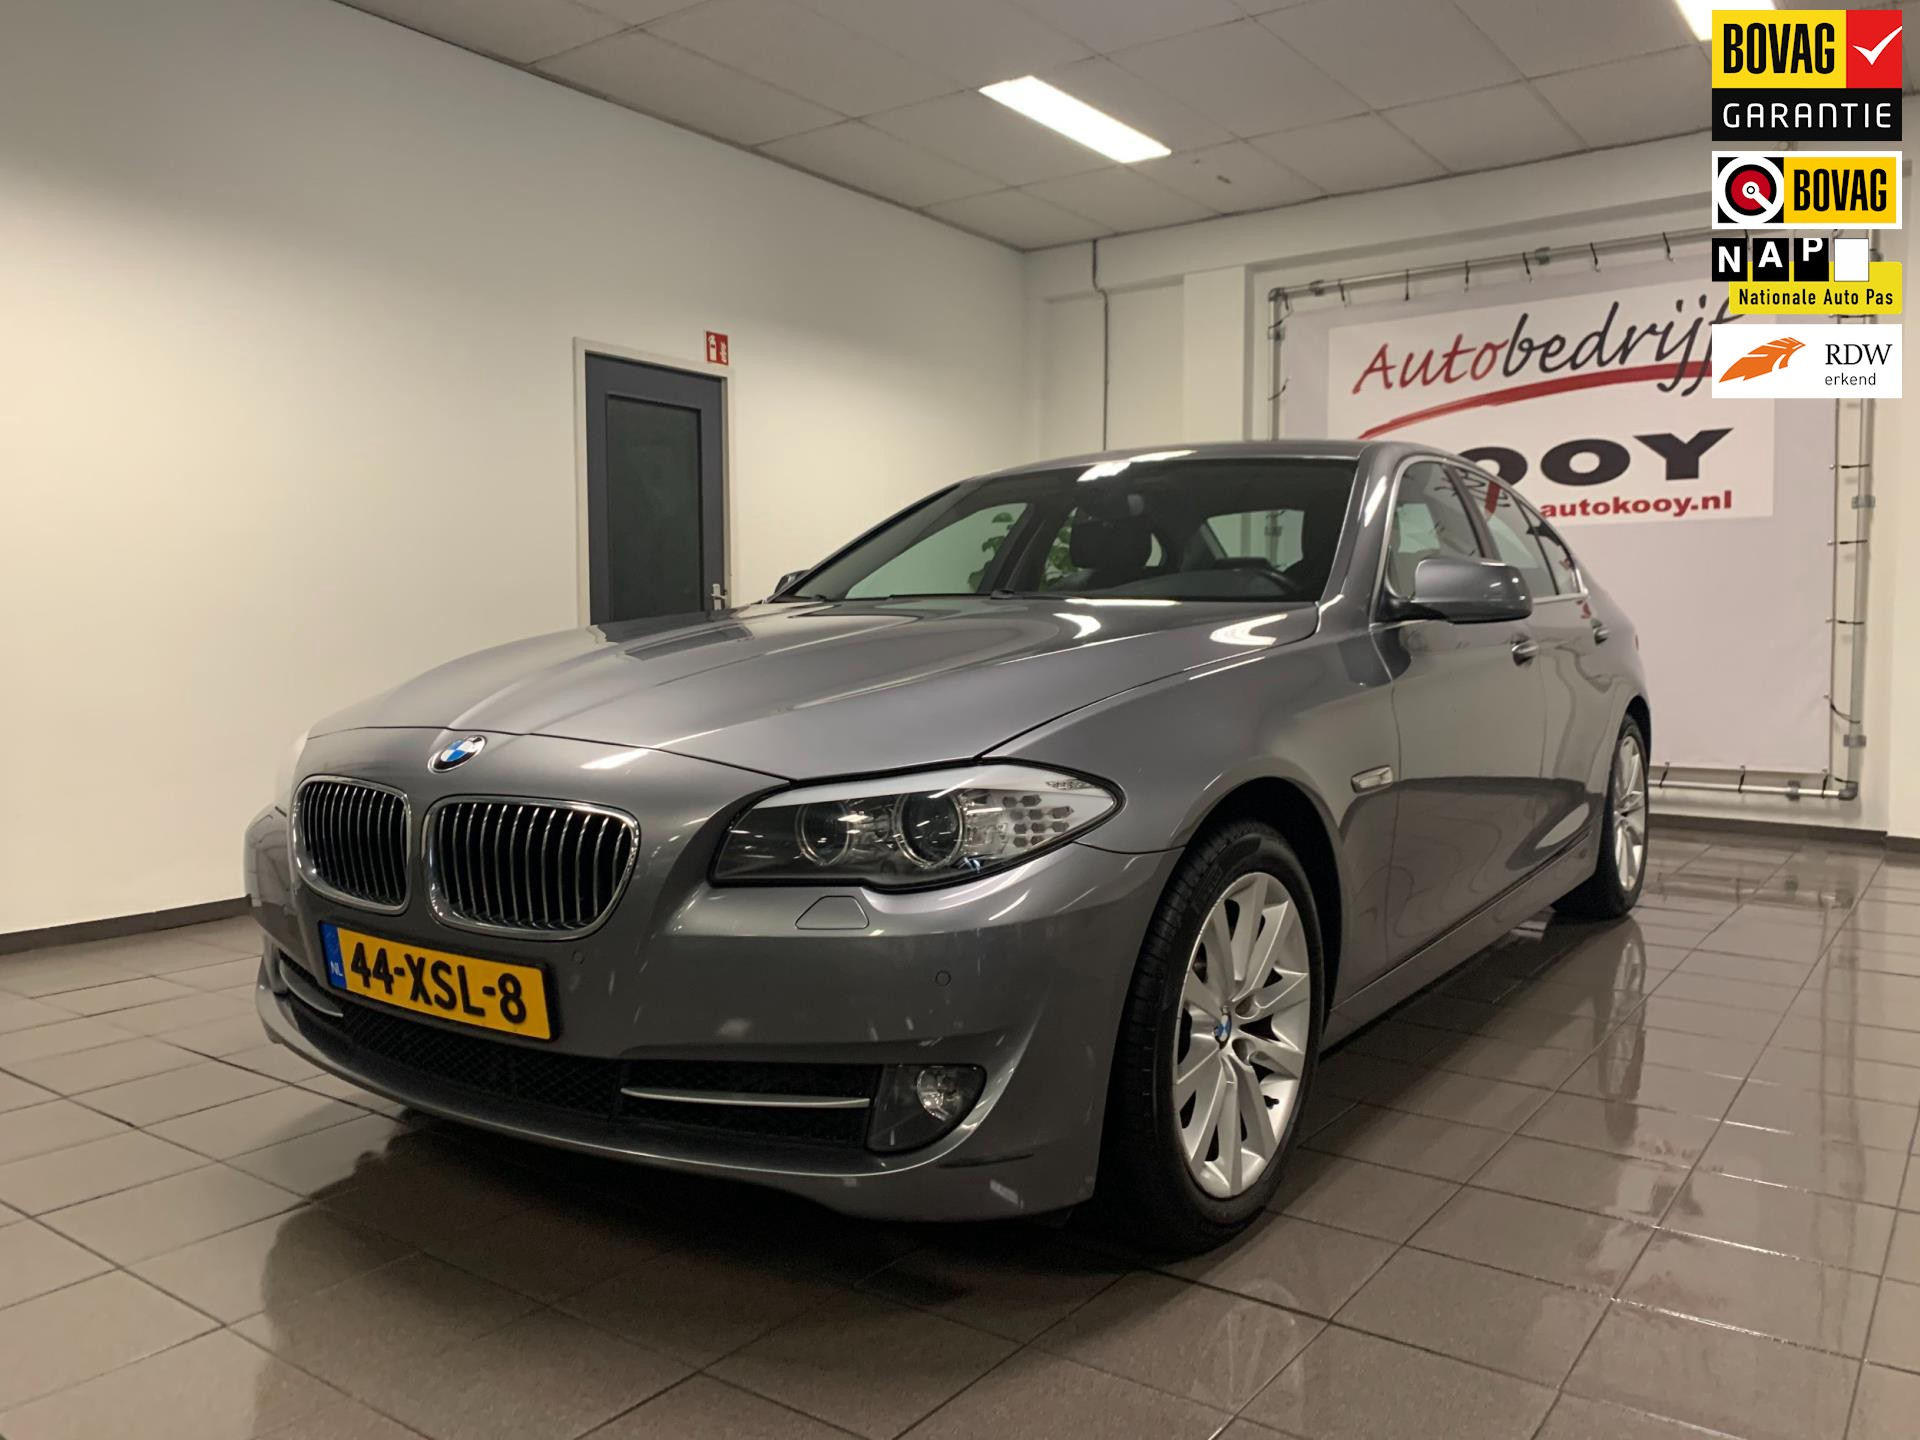 BMW 5-serie 528i Upgrade Edition * Leder / Xenon / Stoelverwarming / NL Auto *